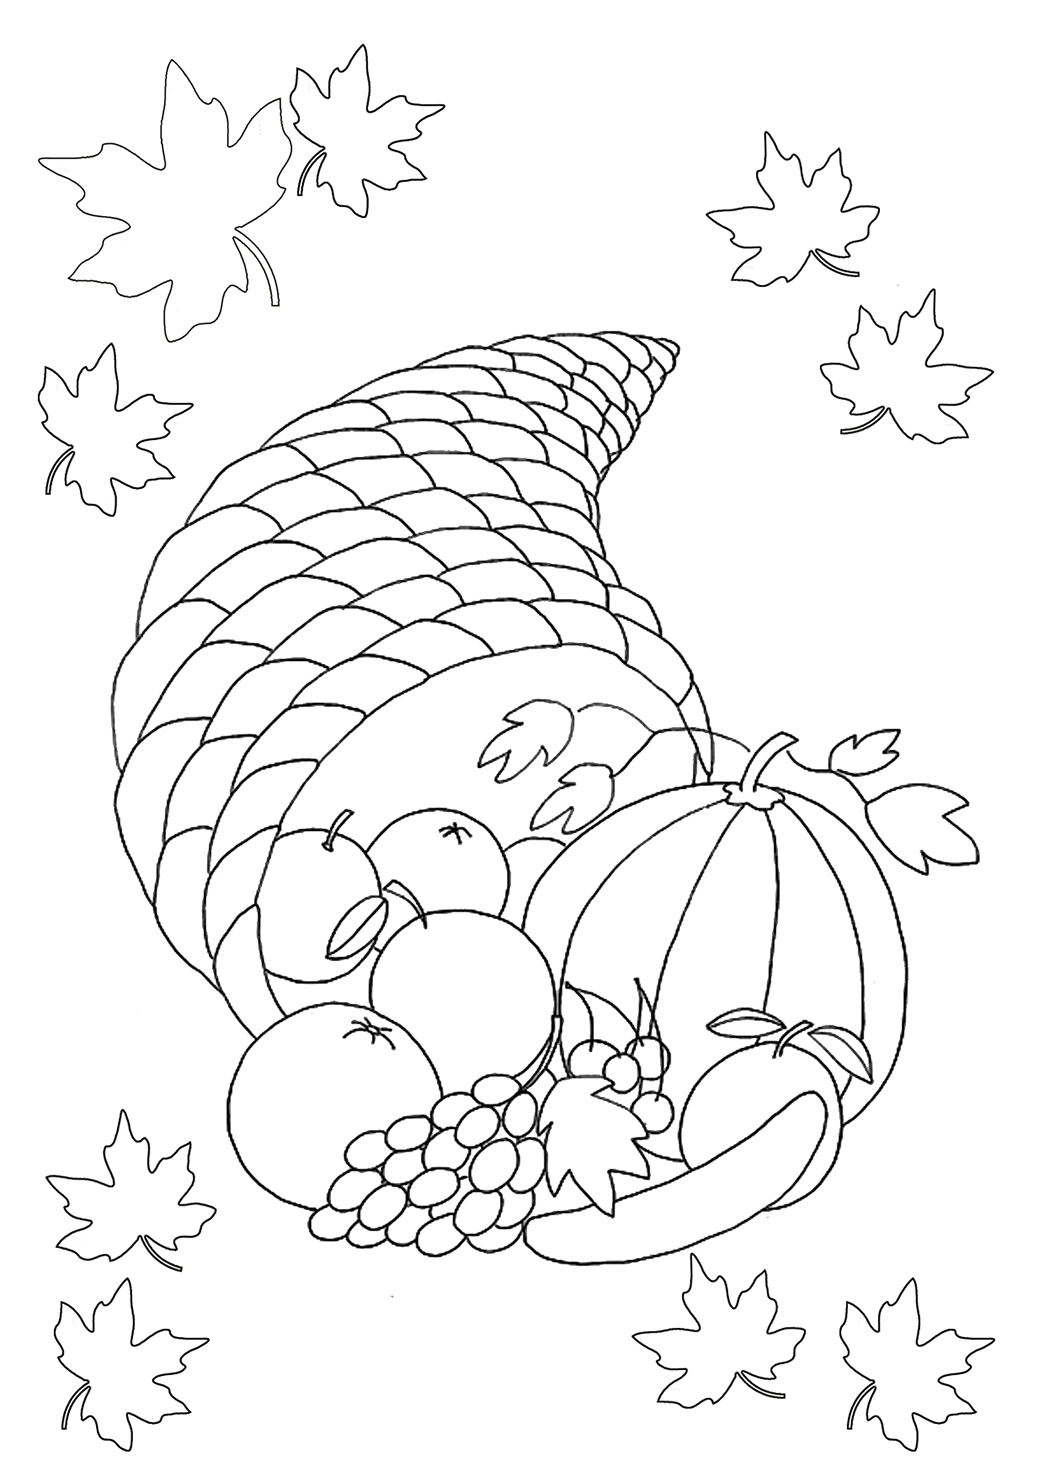 Turkey Bird Thanksgiving Coloring Pages Horn Of Plenty With Fruits And Pumpkin For